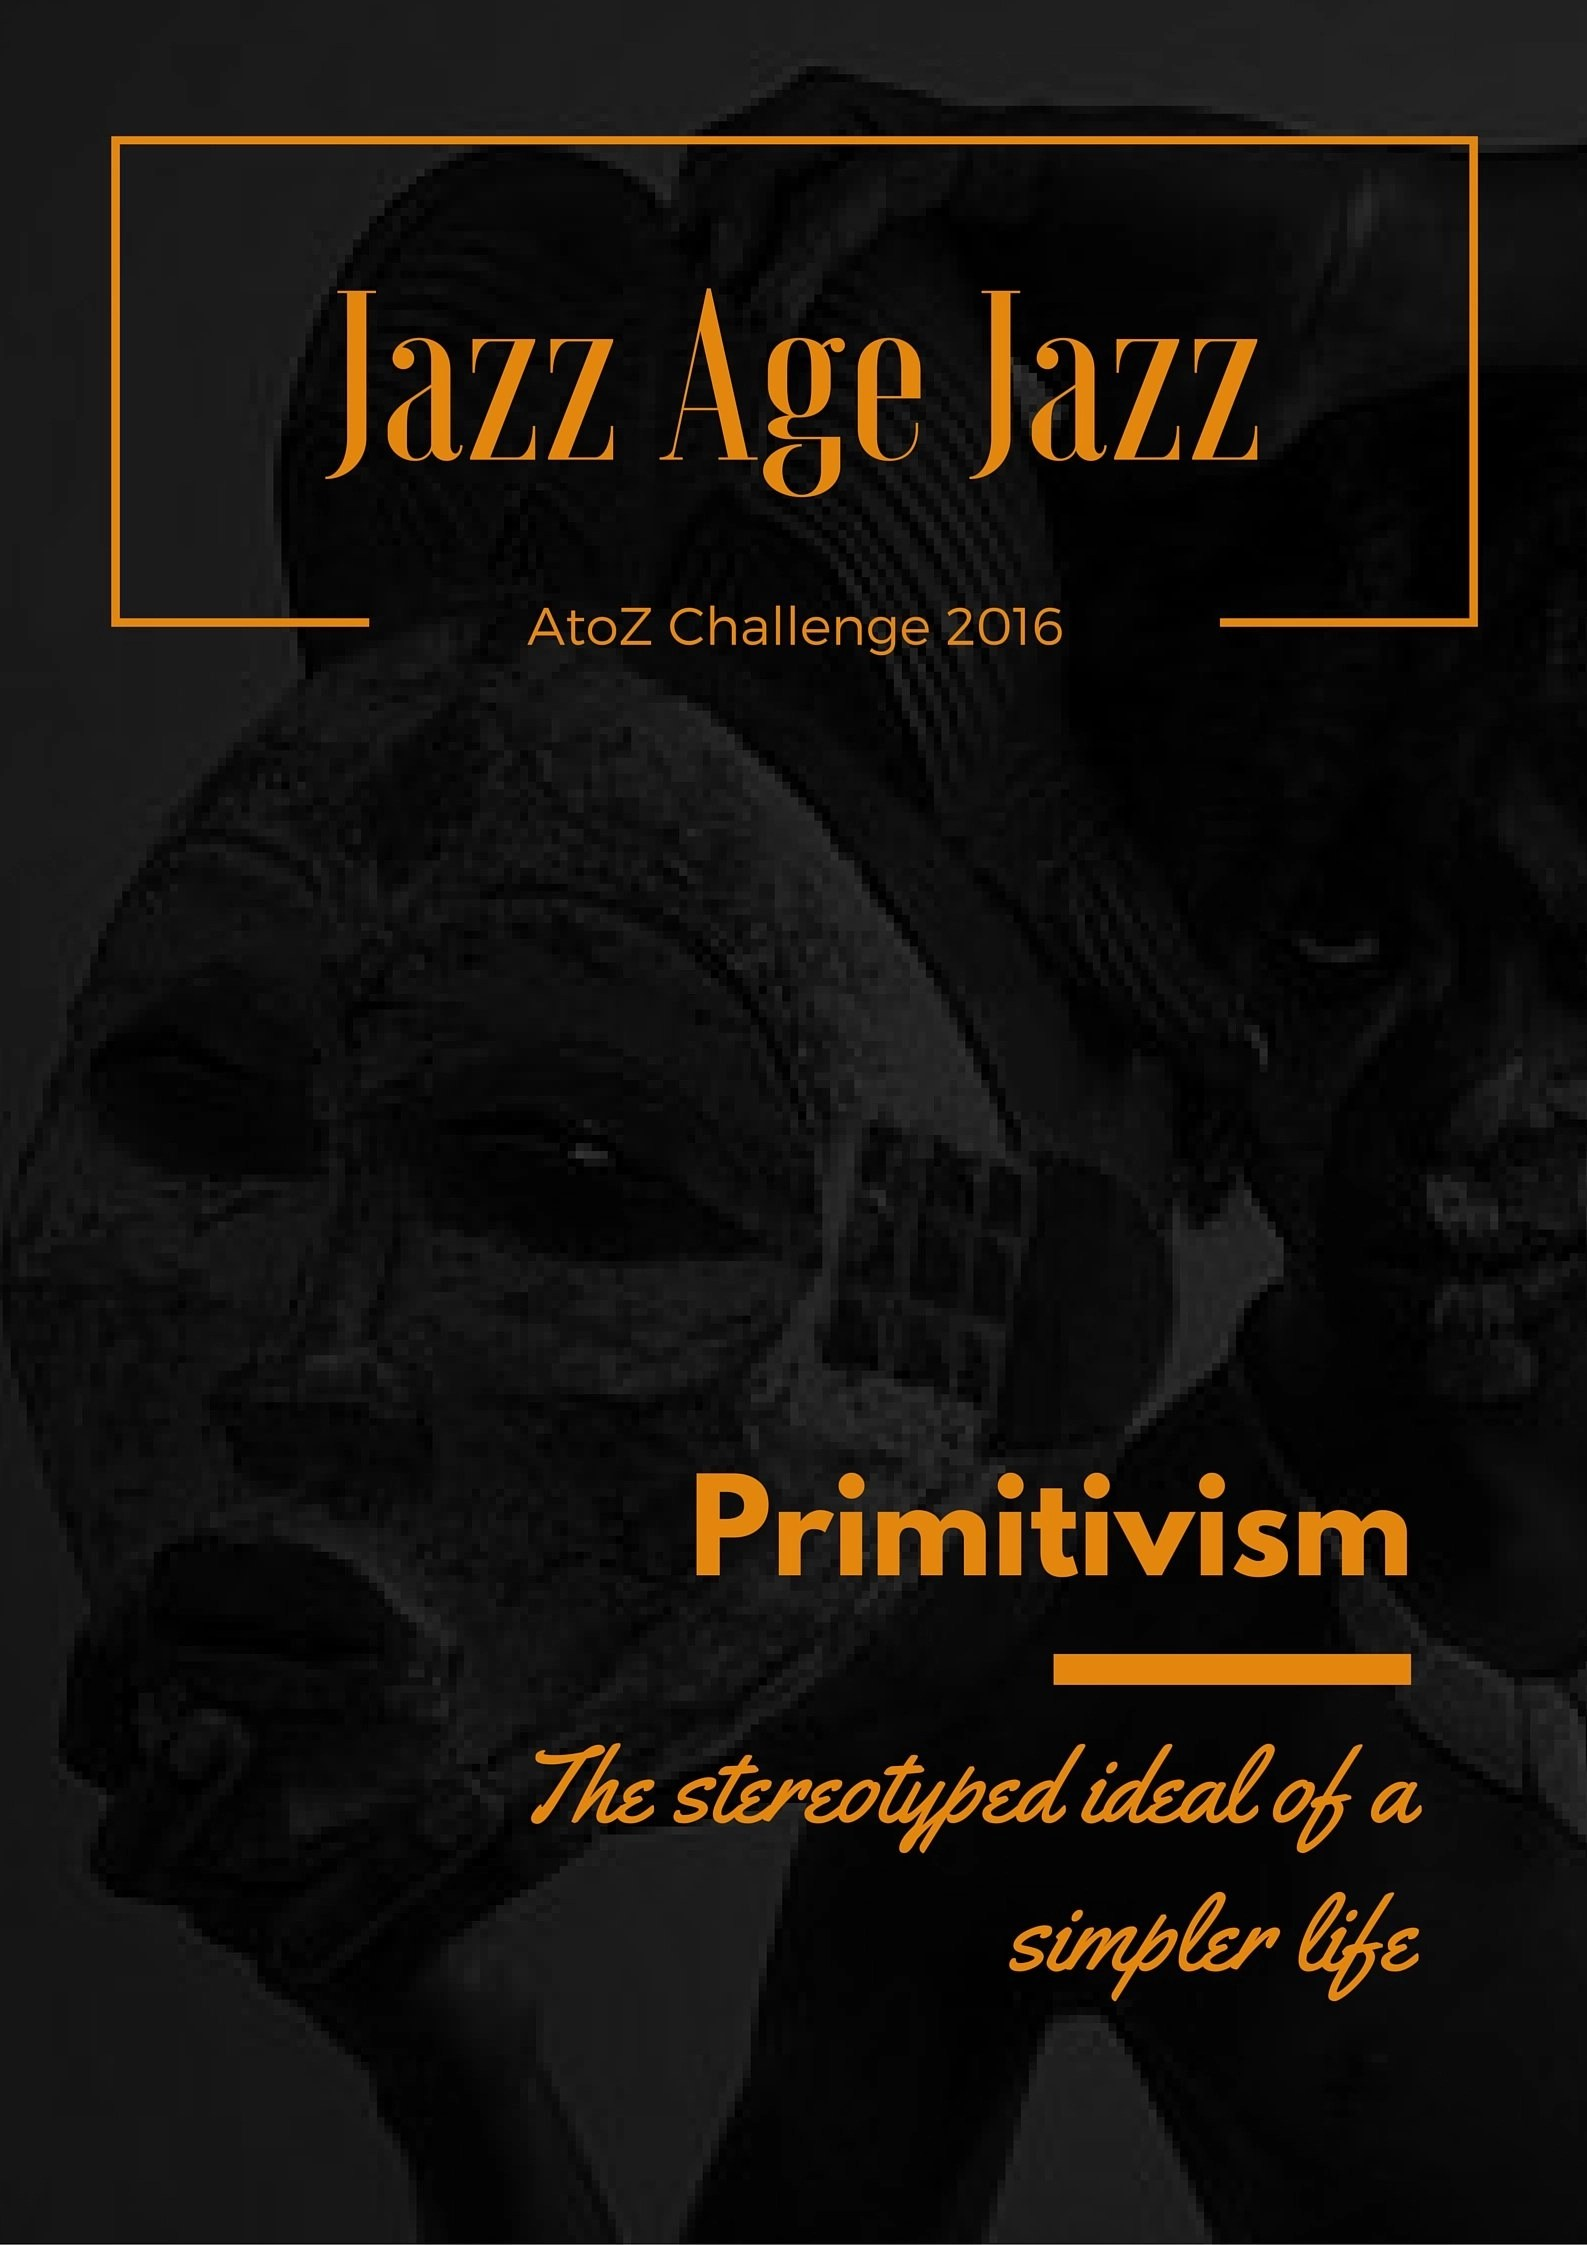 Jazz Age Jazz - Primitivism: the stereotyped idea of a simpler life